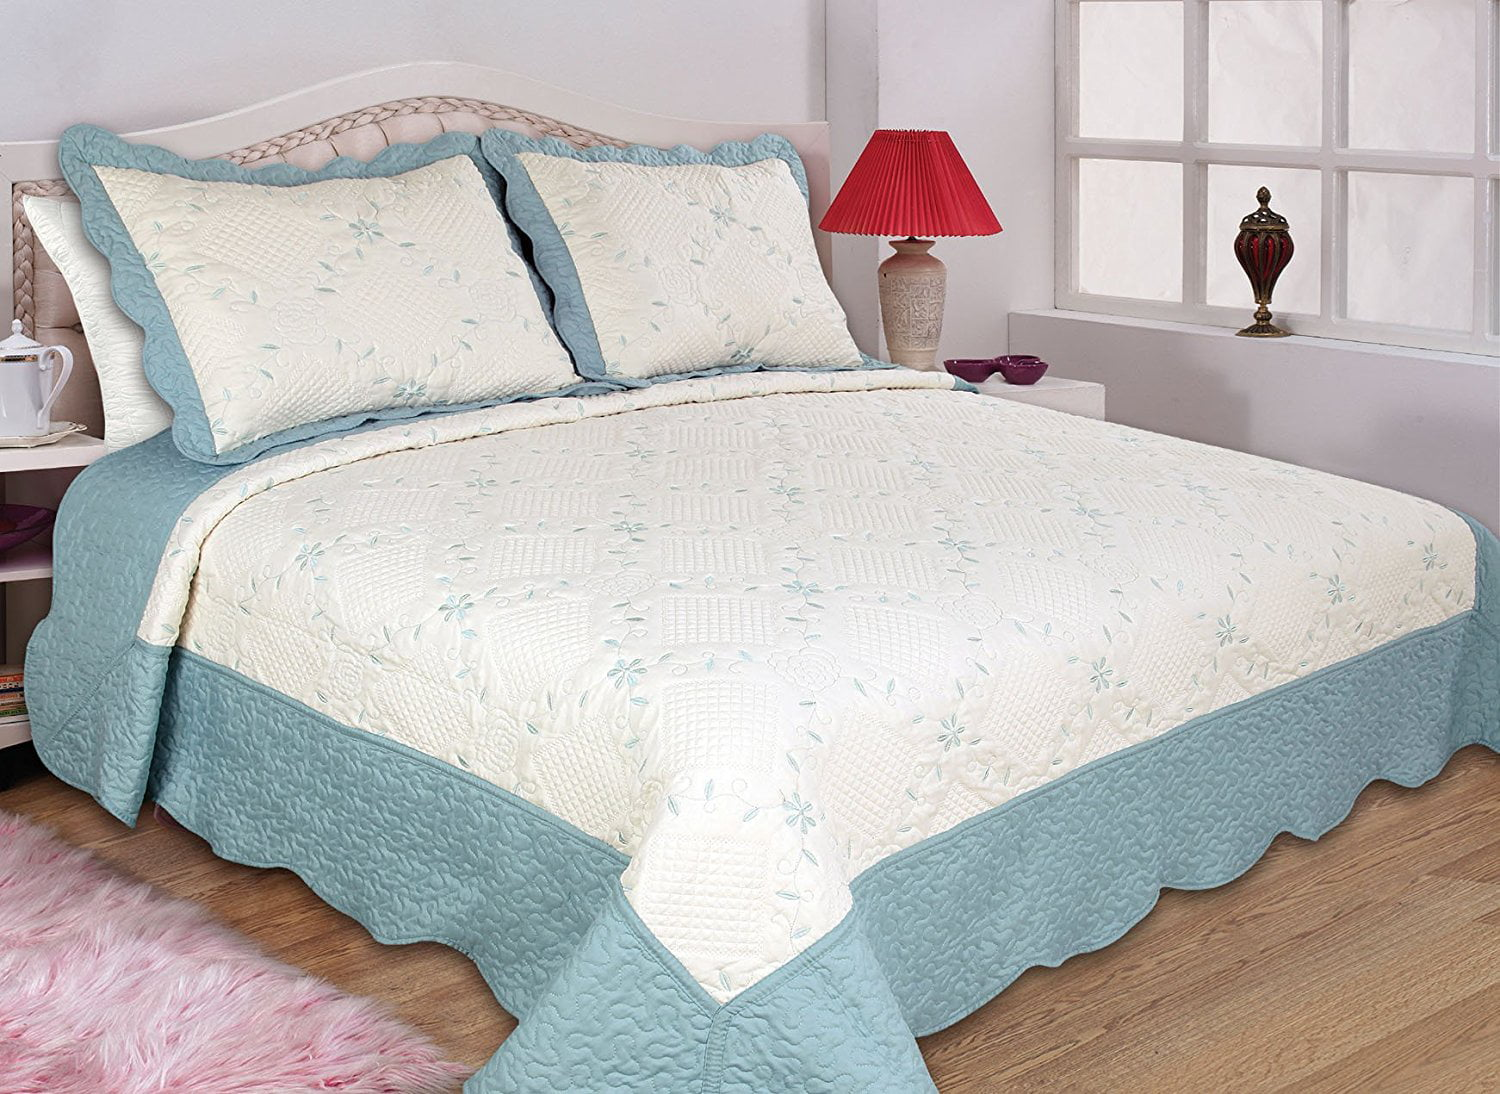 All for You 3pc Reversible Quilt Set, Bedspread, and Coverlet-4 different sizes-Aqua and... by All For You Home